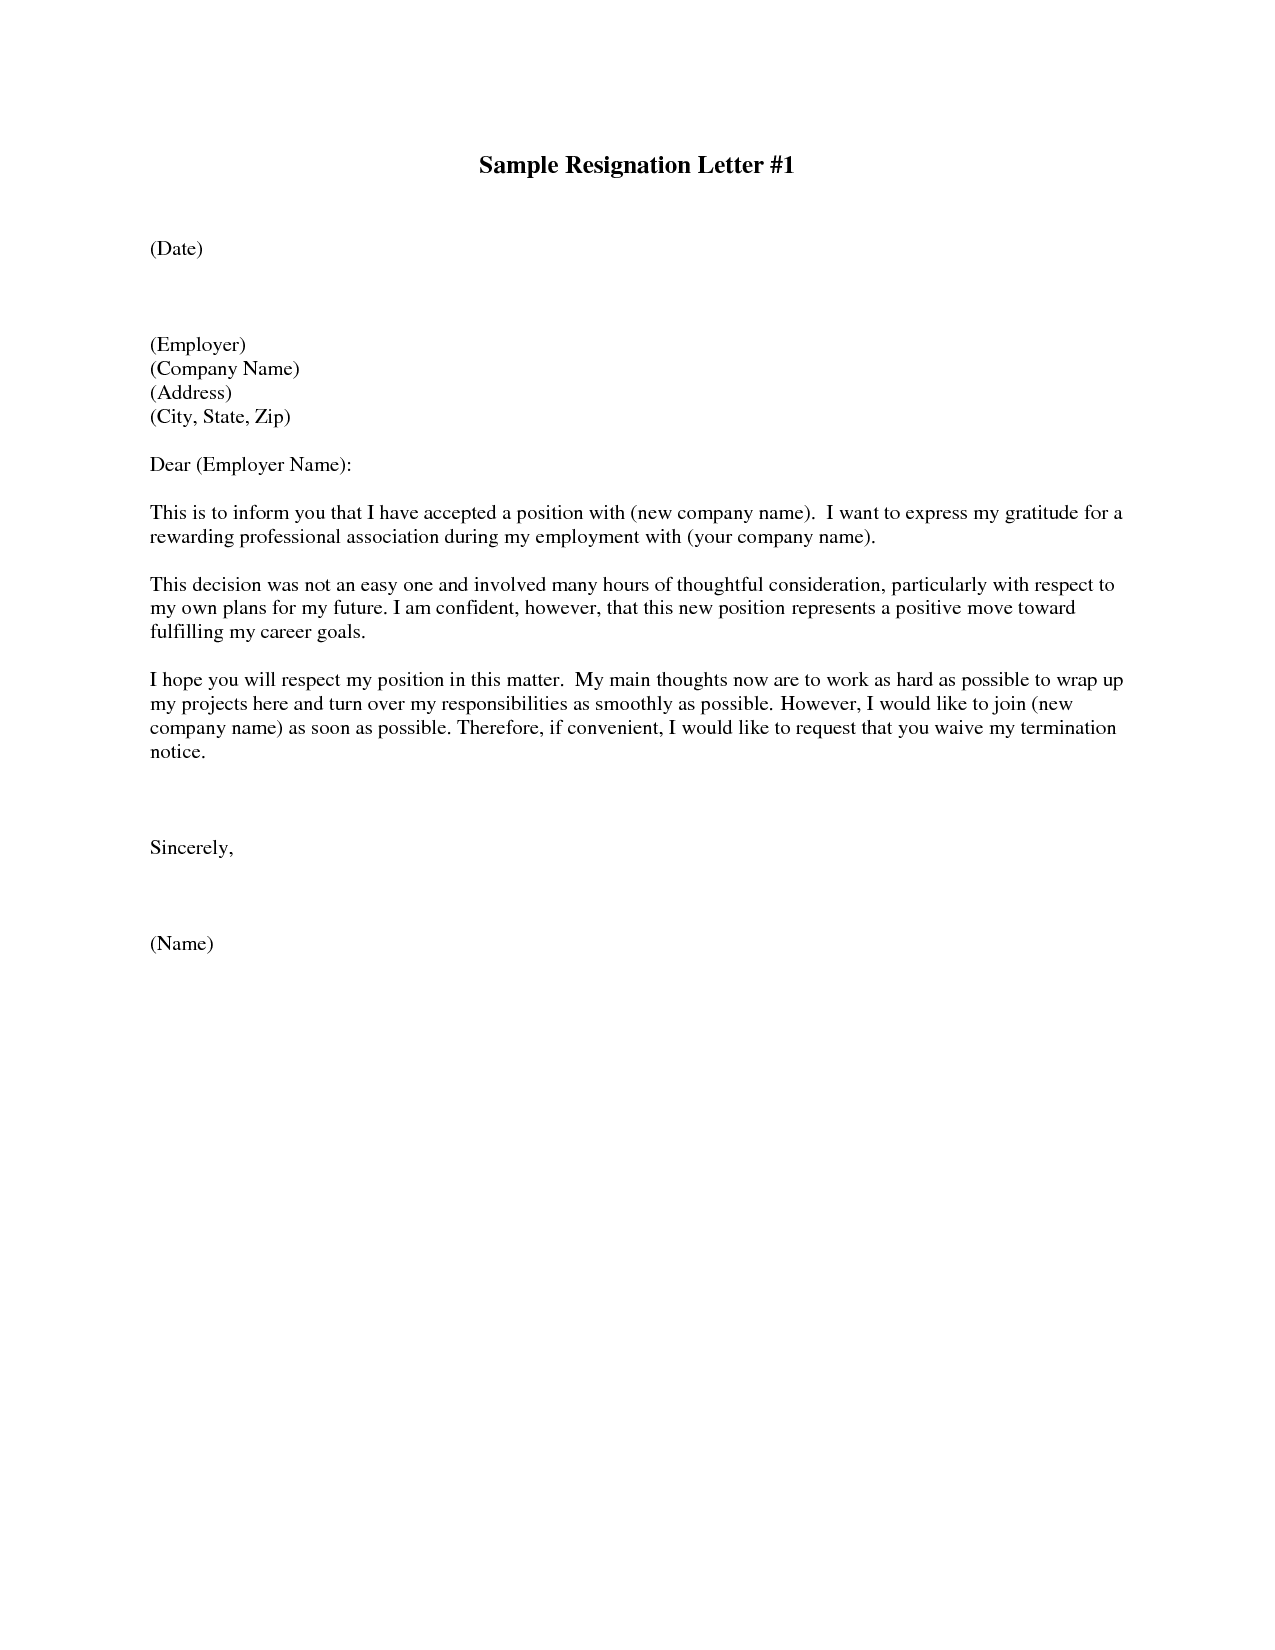 Professional Resignation Letter Sample | mobile discoveries